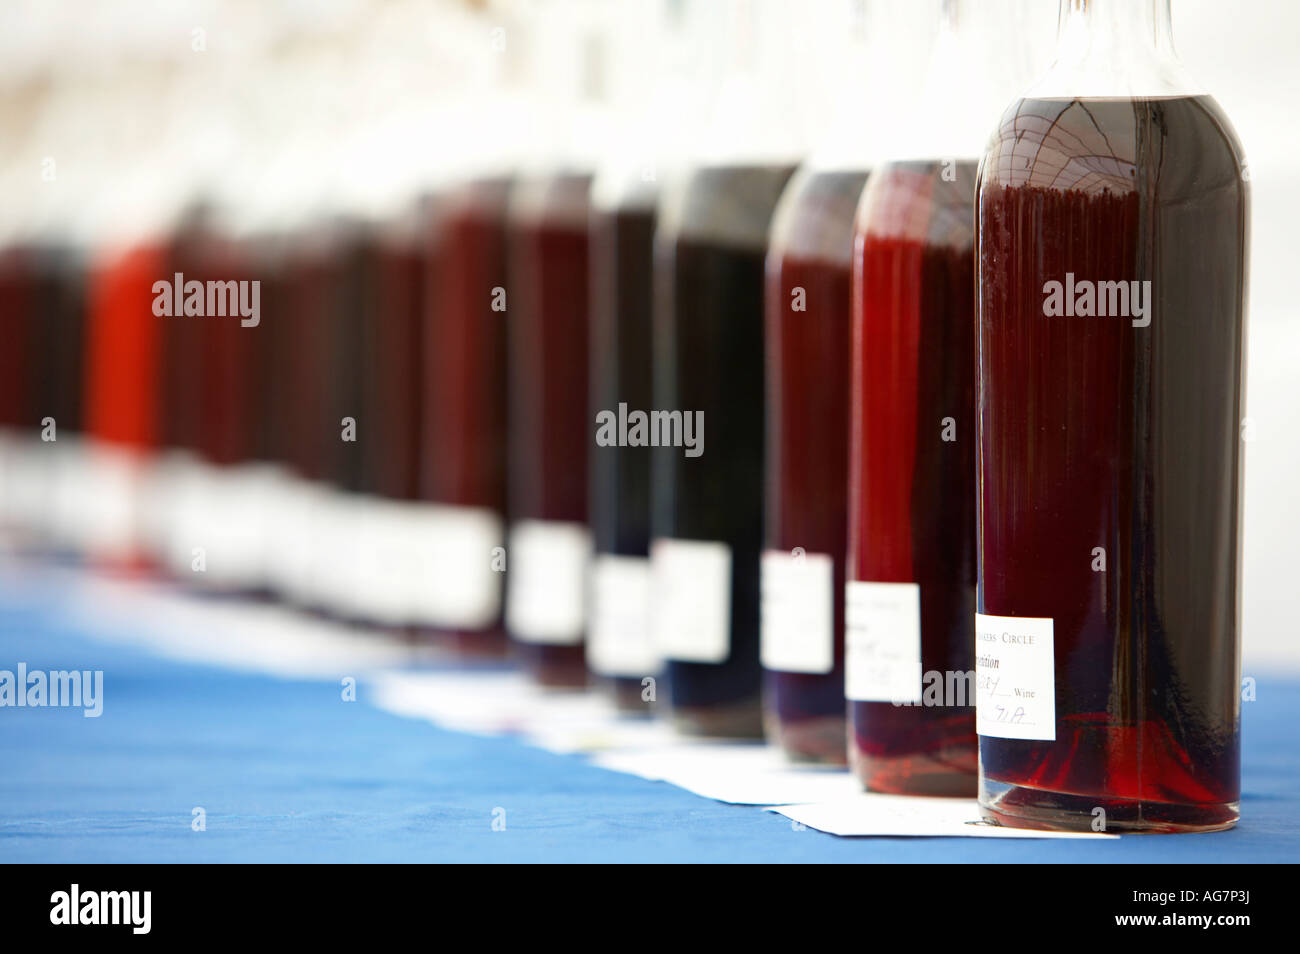 labels and bottoms of glass bottles of home made wine in a row for judging purposes - Stock Image